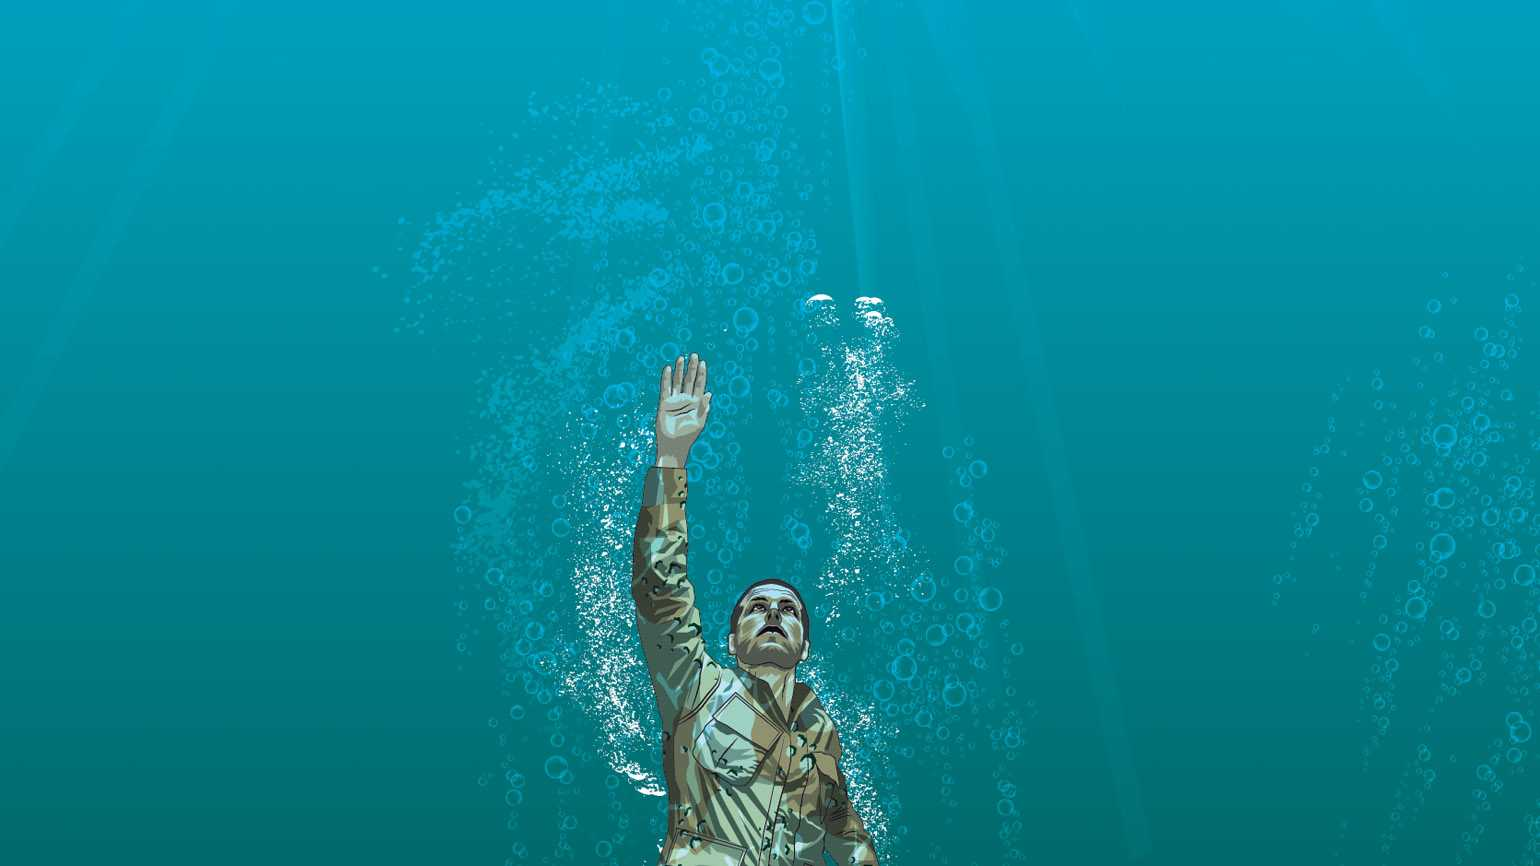 An artist's rendering of a soldier underwater trying to swim to the surface.